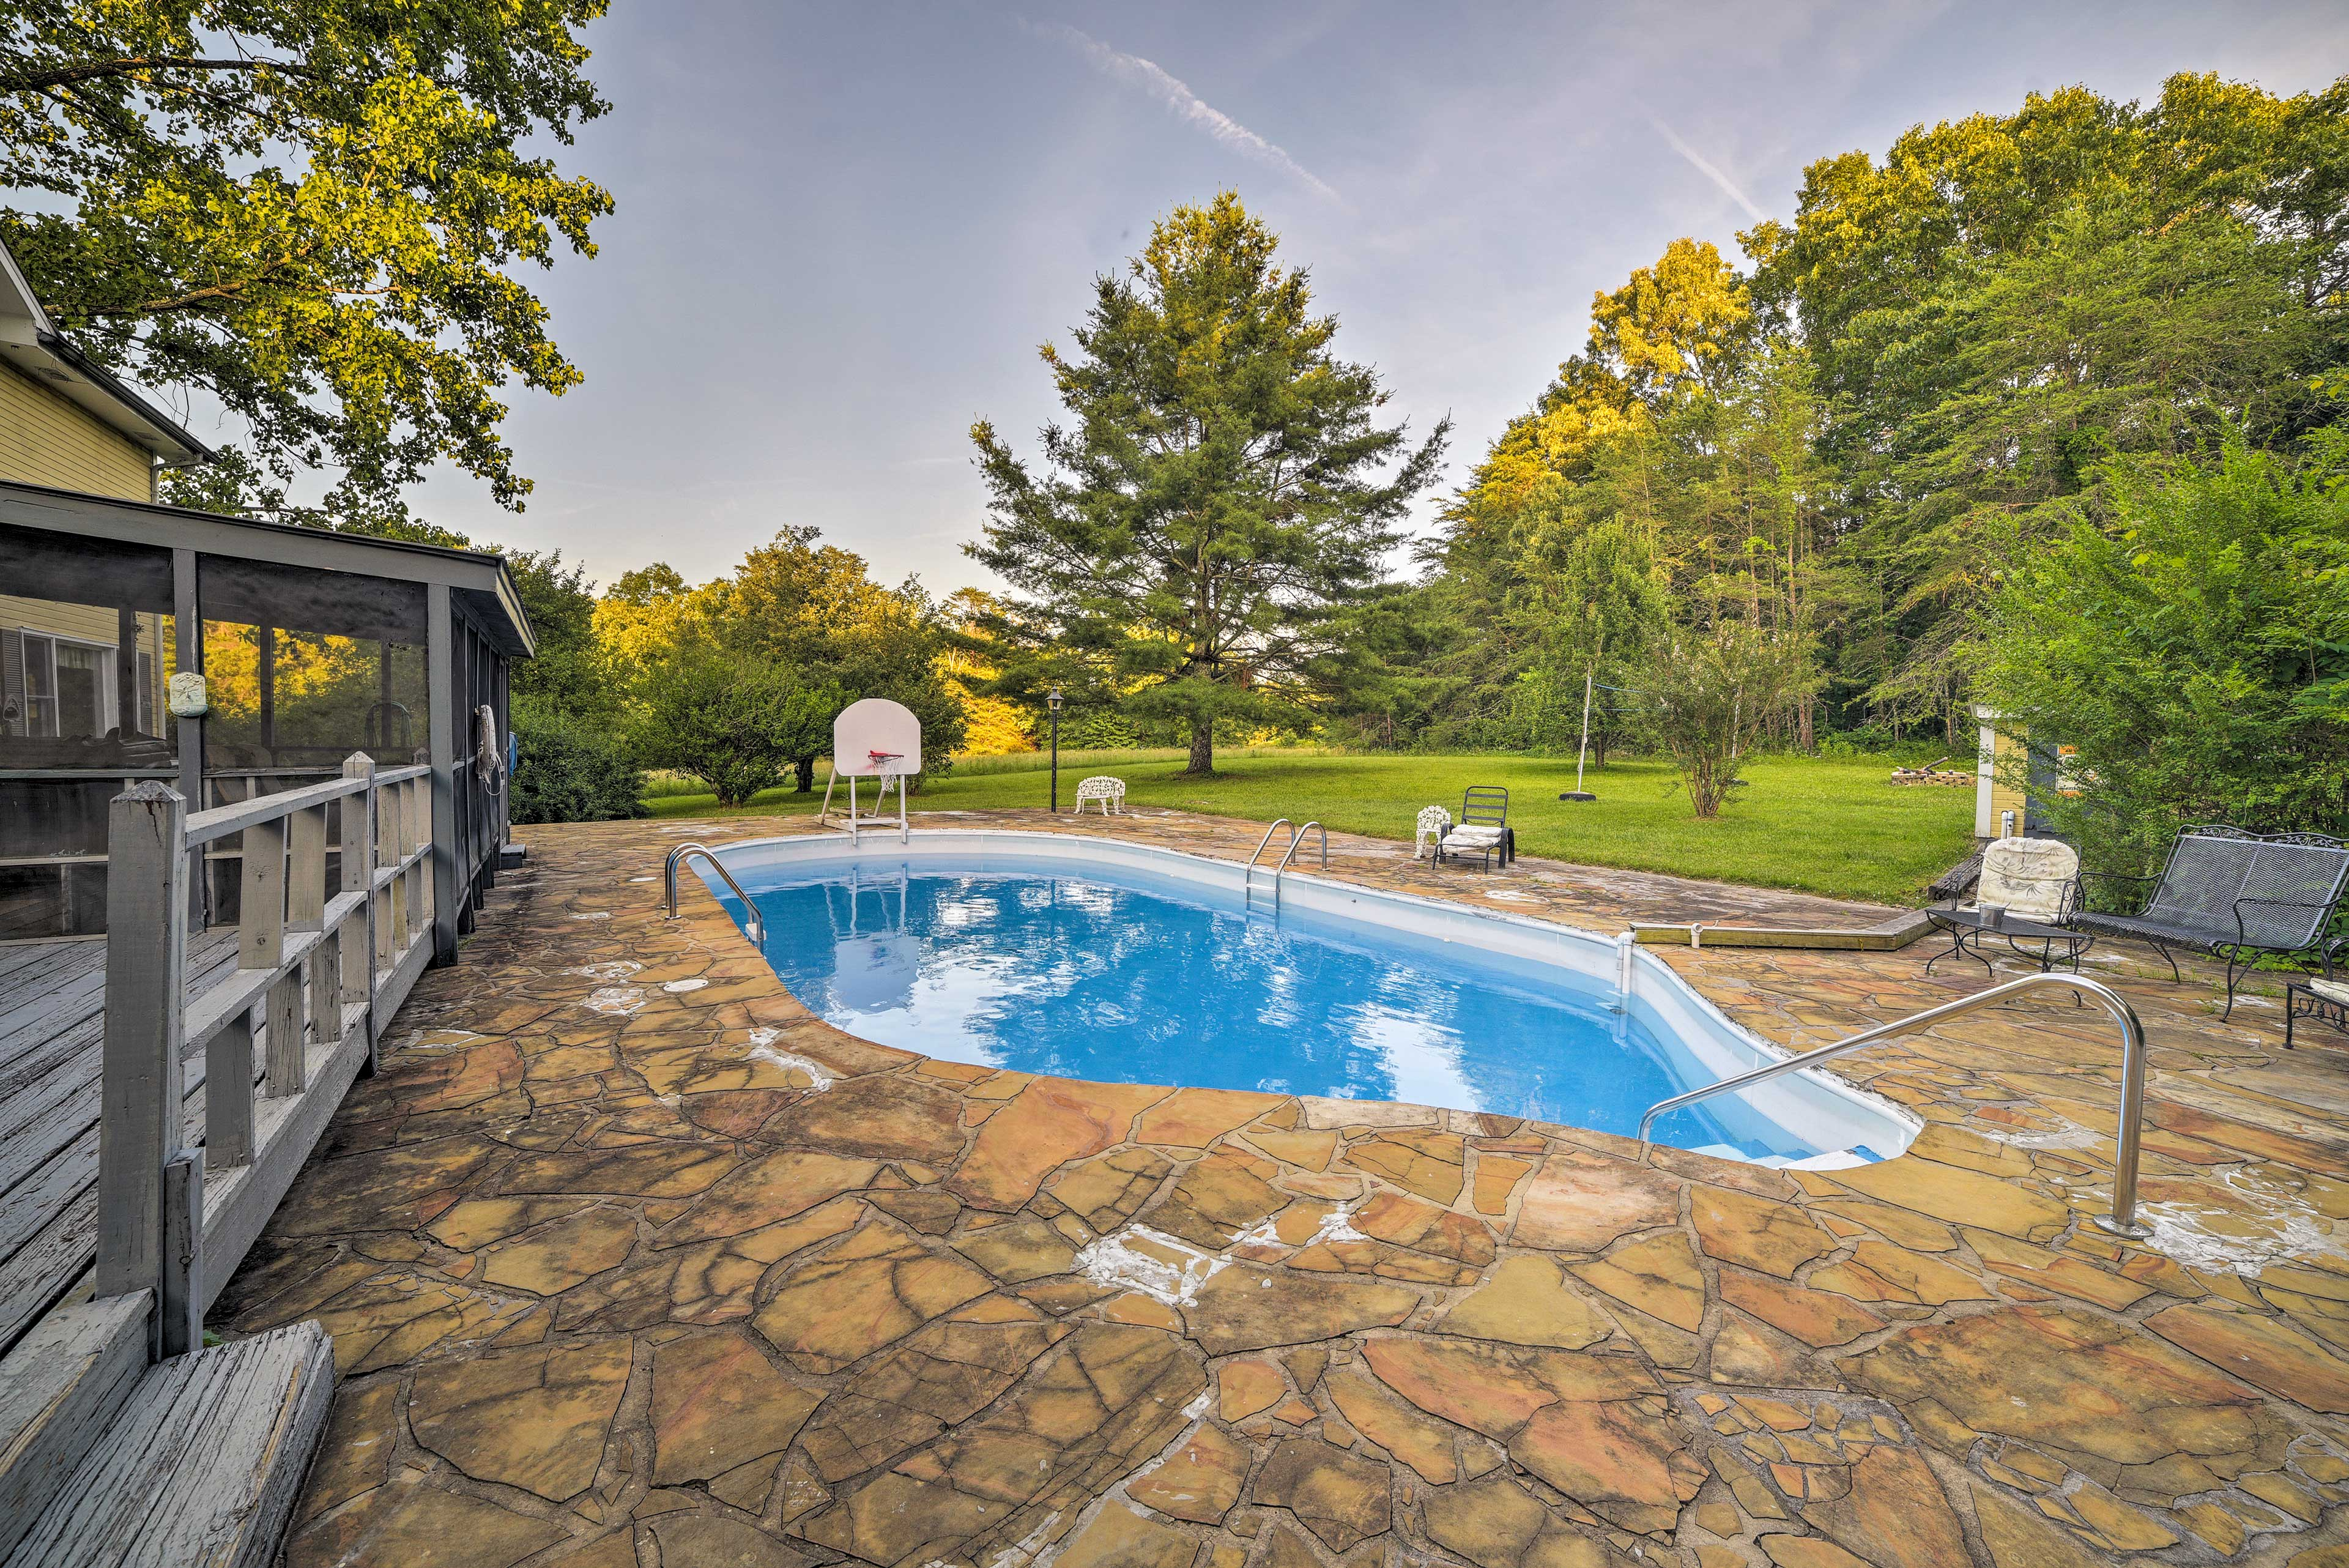 Beat the heat with the large pool!